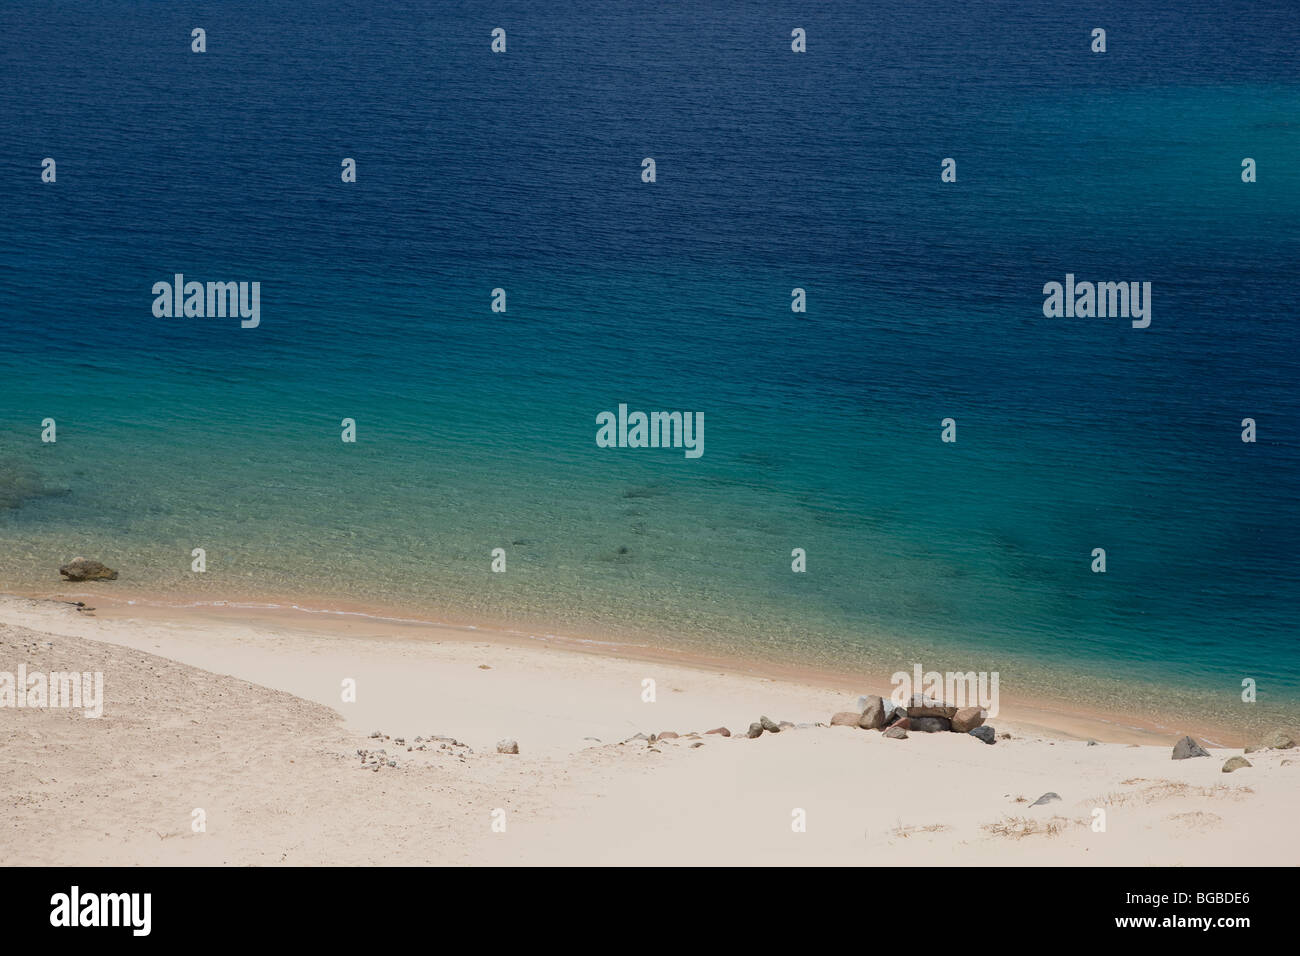 Africa, Egypt, Sharm el Sheikh, national park Ras Mohammed, beach, sea, water, blue, colors, sand, relax - Stock Image